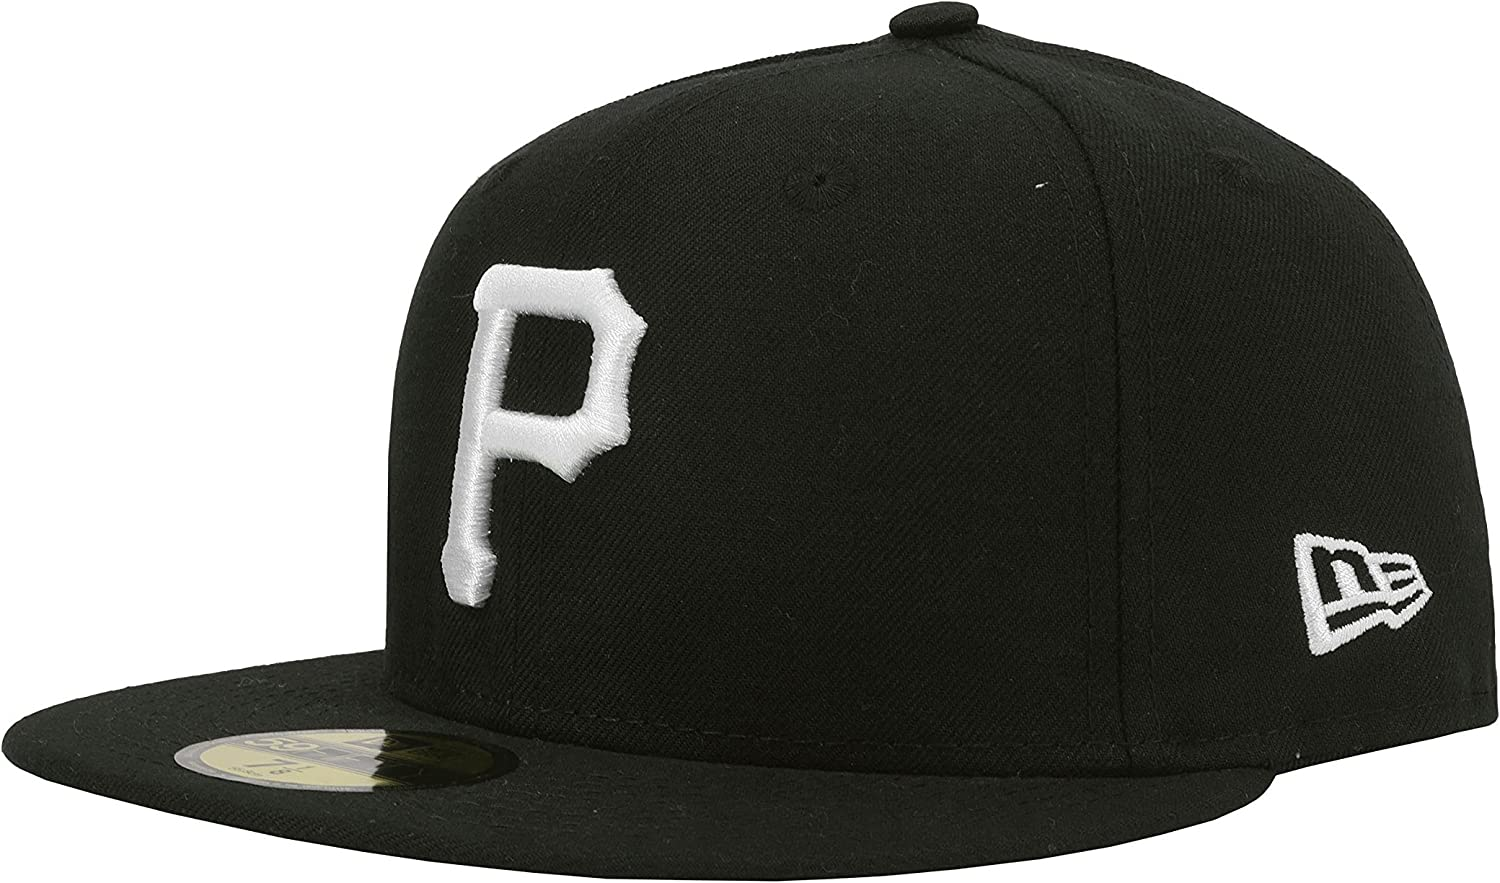 8 1//8 NEW ERA 59fifty Mens MLB HAT Pittsburgh Pirates Black Fitted Cap